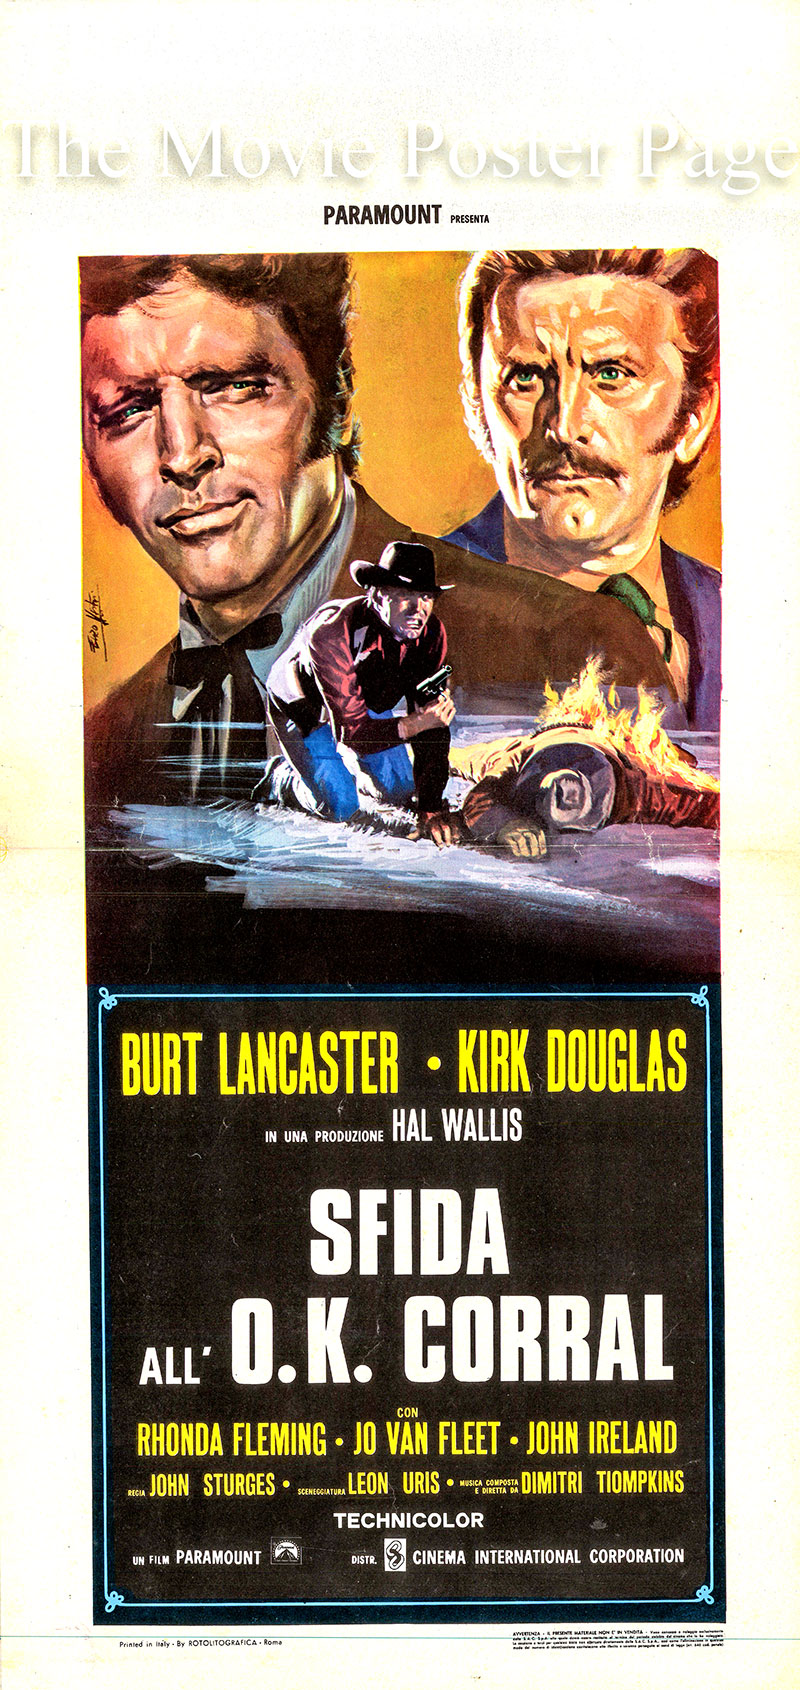 Pictured is an Italian locandina poster for a 1975 rerelease of the 1957 John Sturges film Gunfight at the OK Corral starring Burt Lancaster as Wyatt Earp.